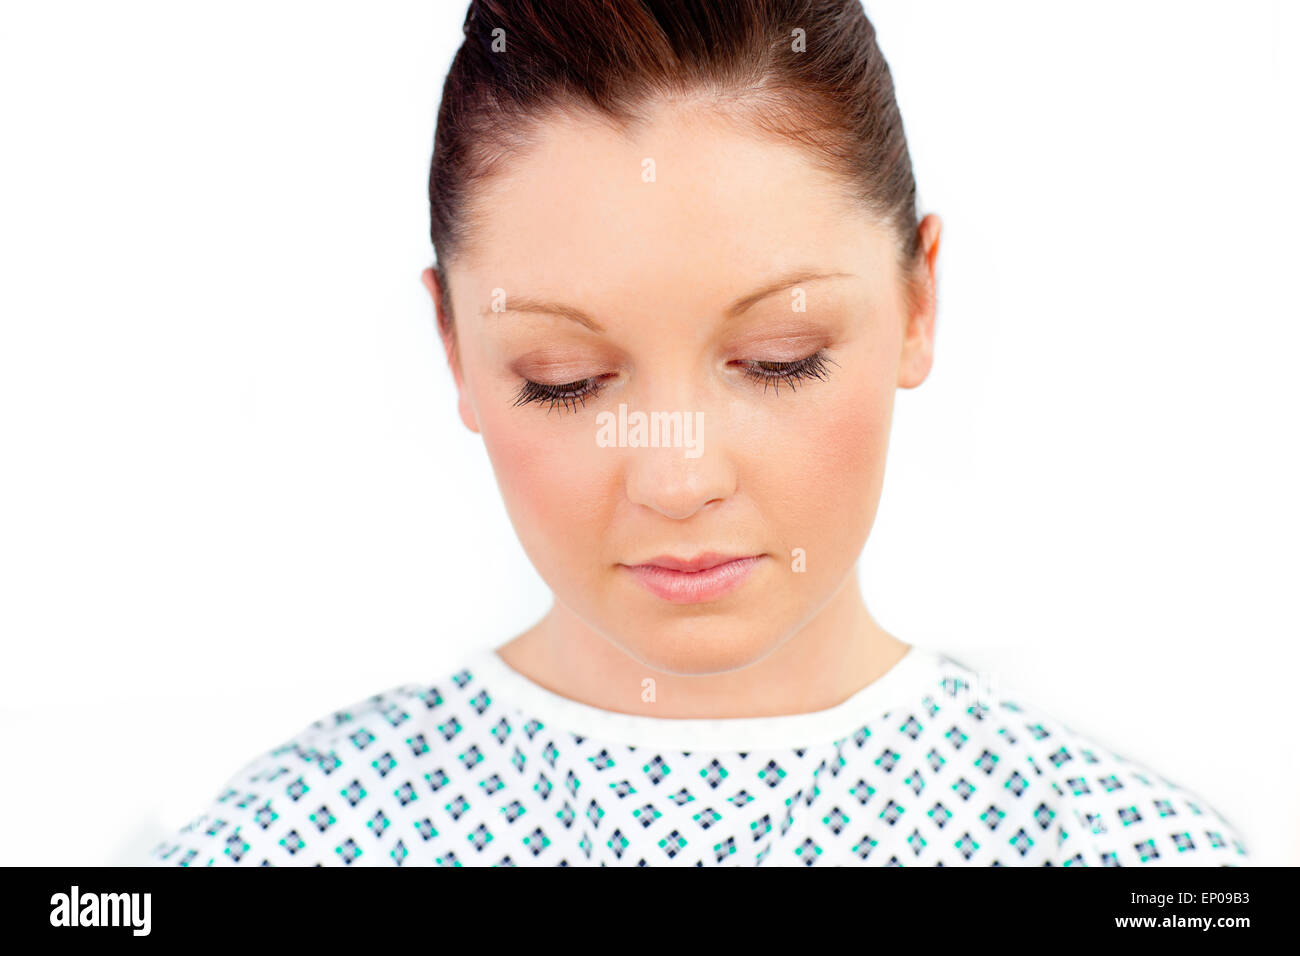 Close-up of a downcast patient against a white background - Stock Image